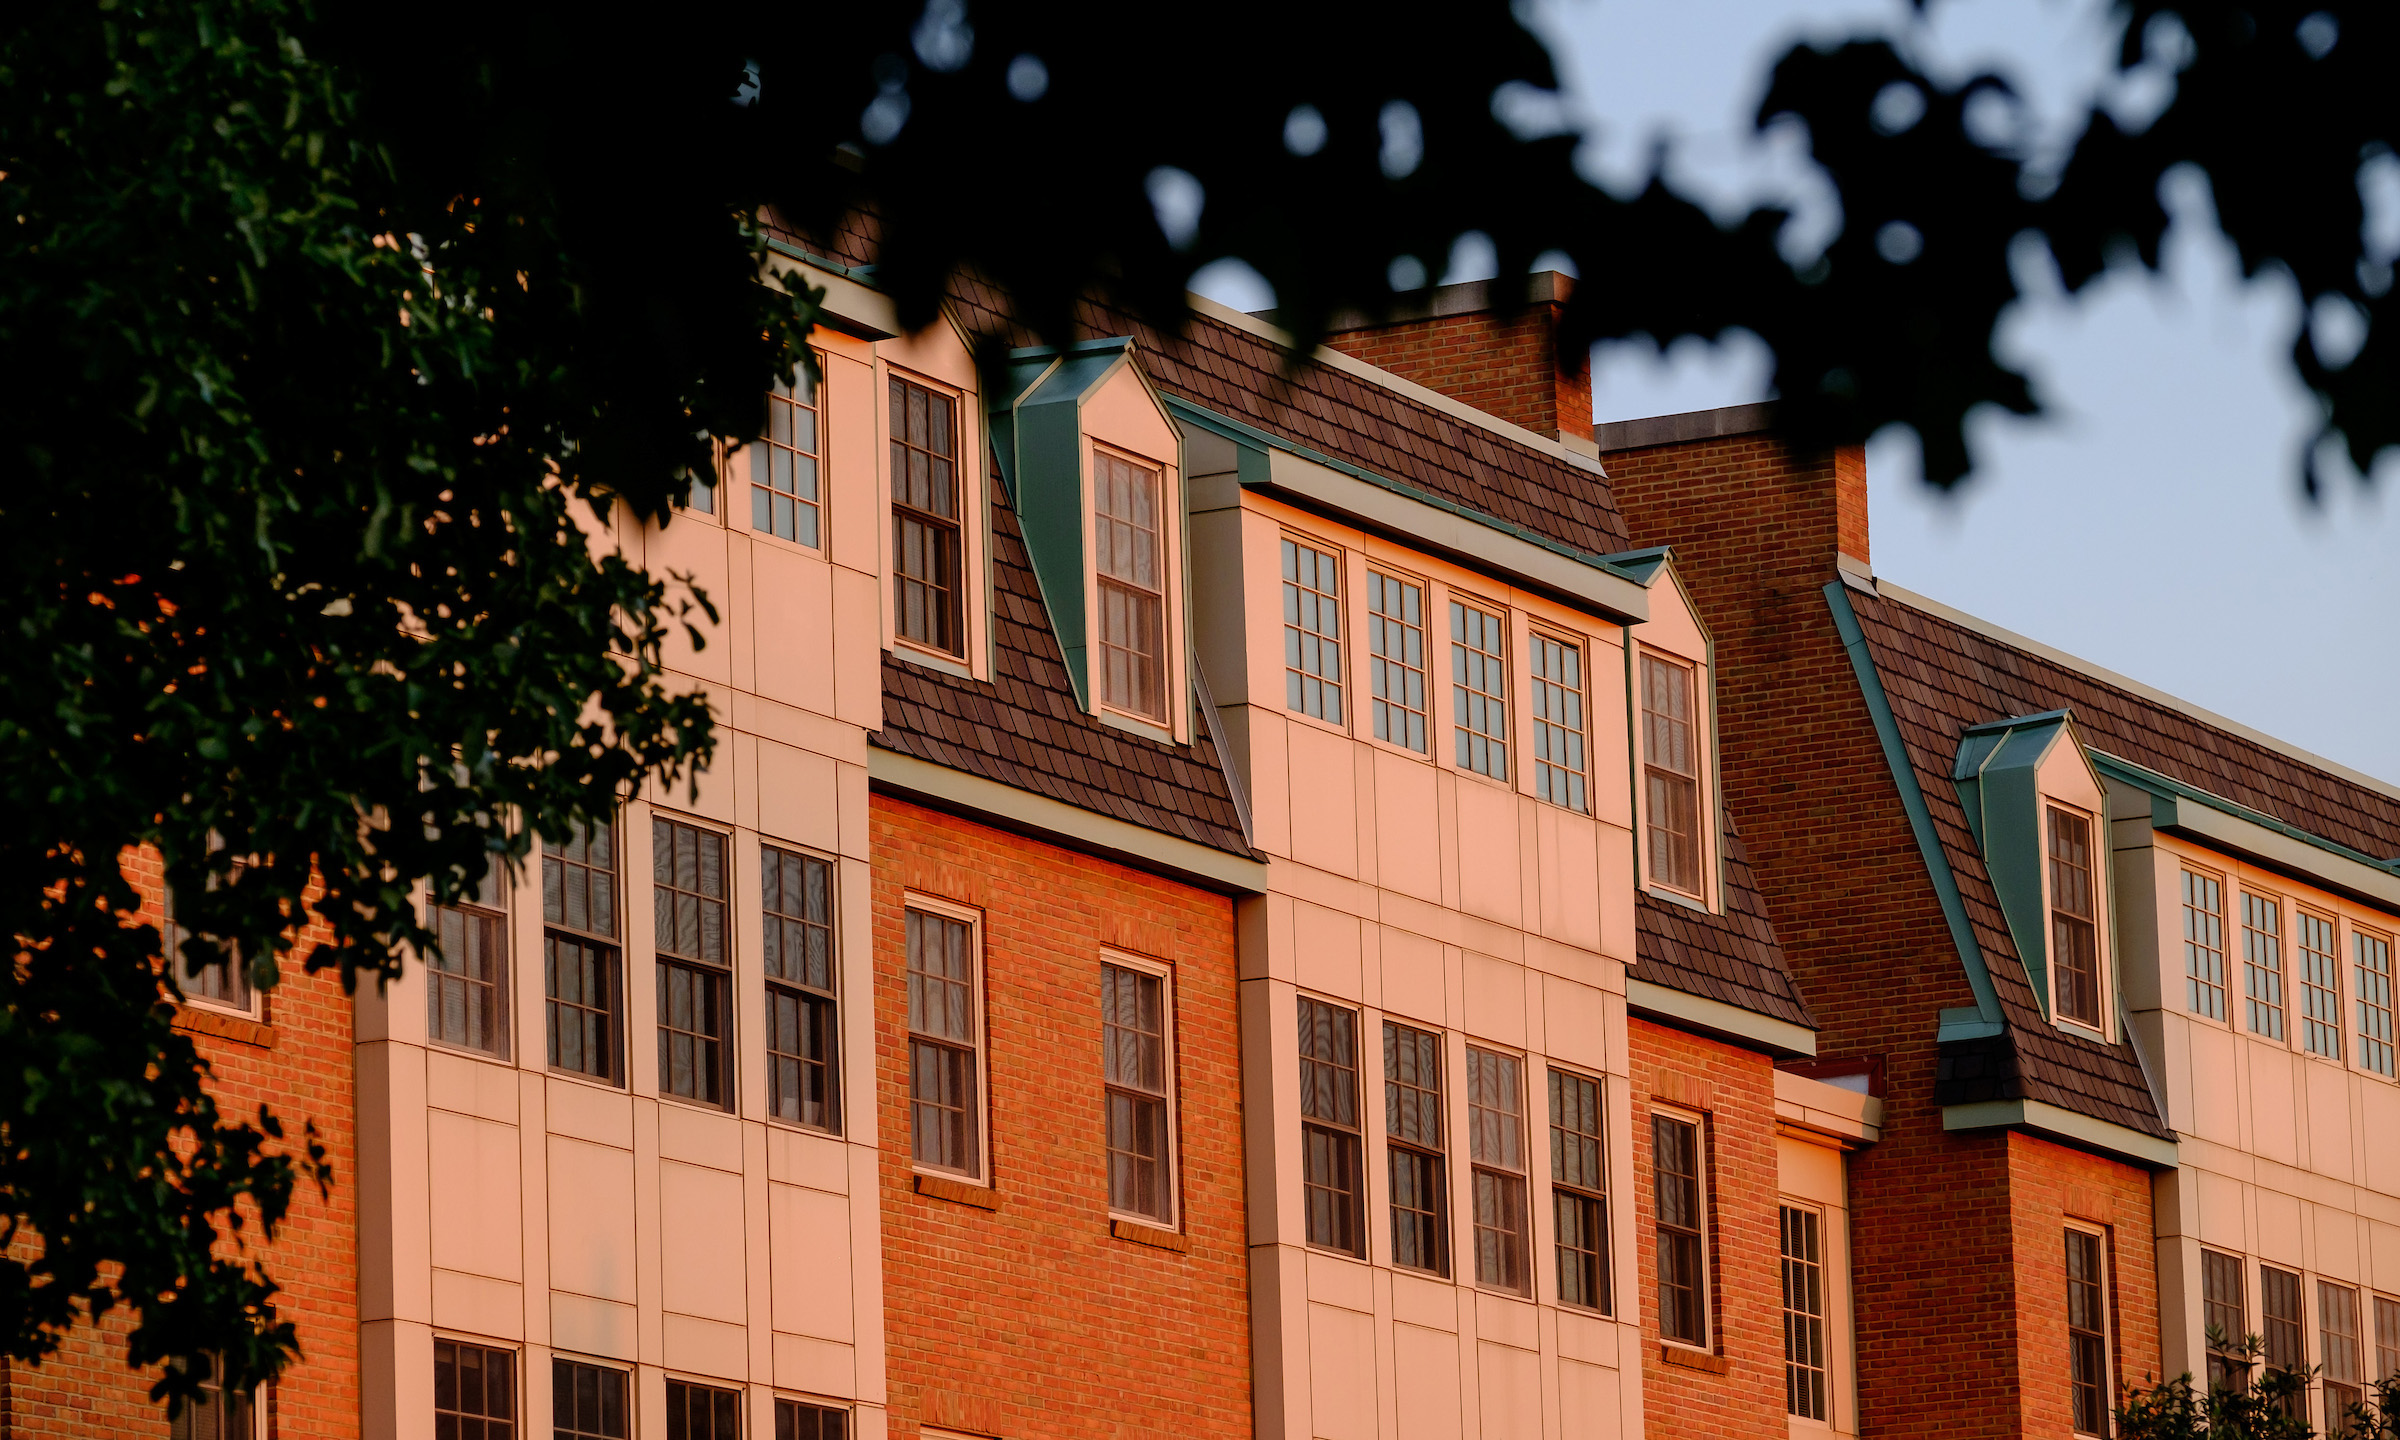 Photograph of Polo Residence hall at sunset